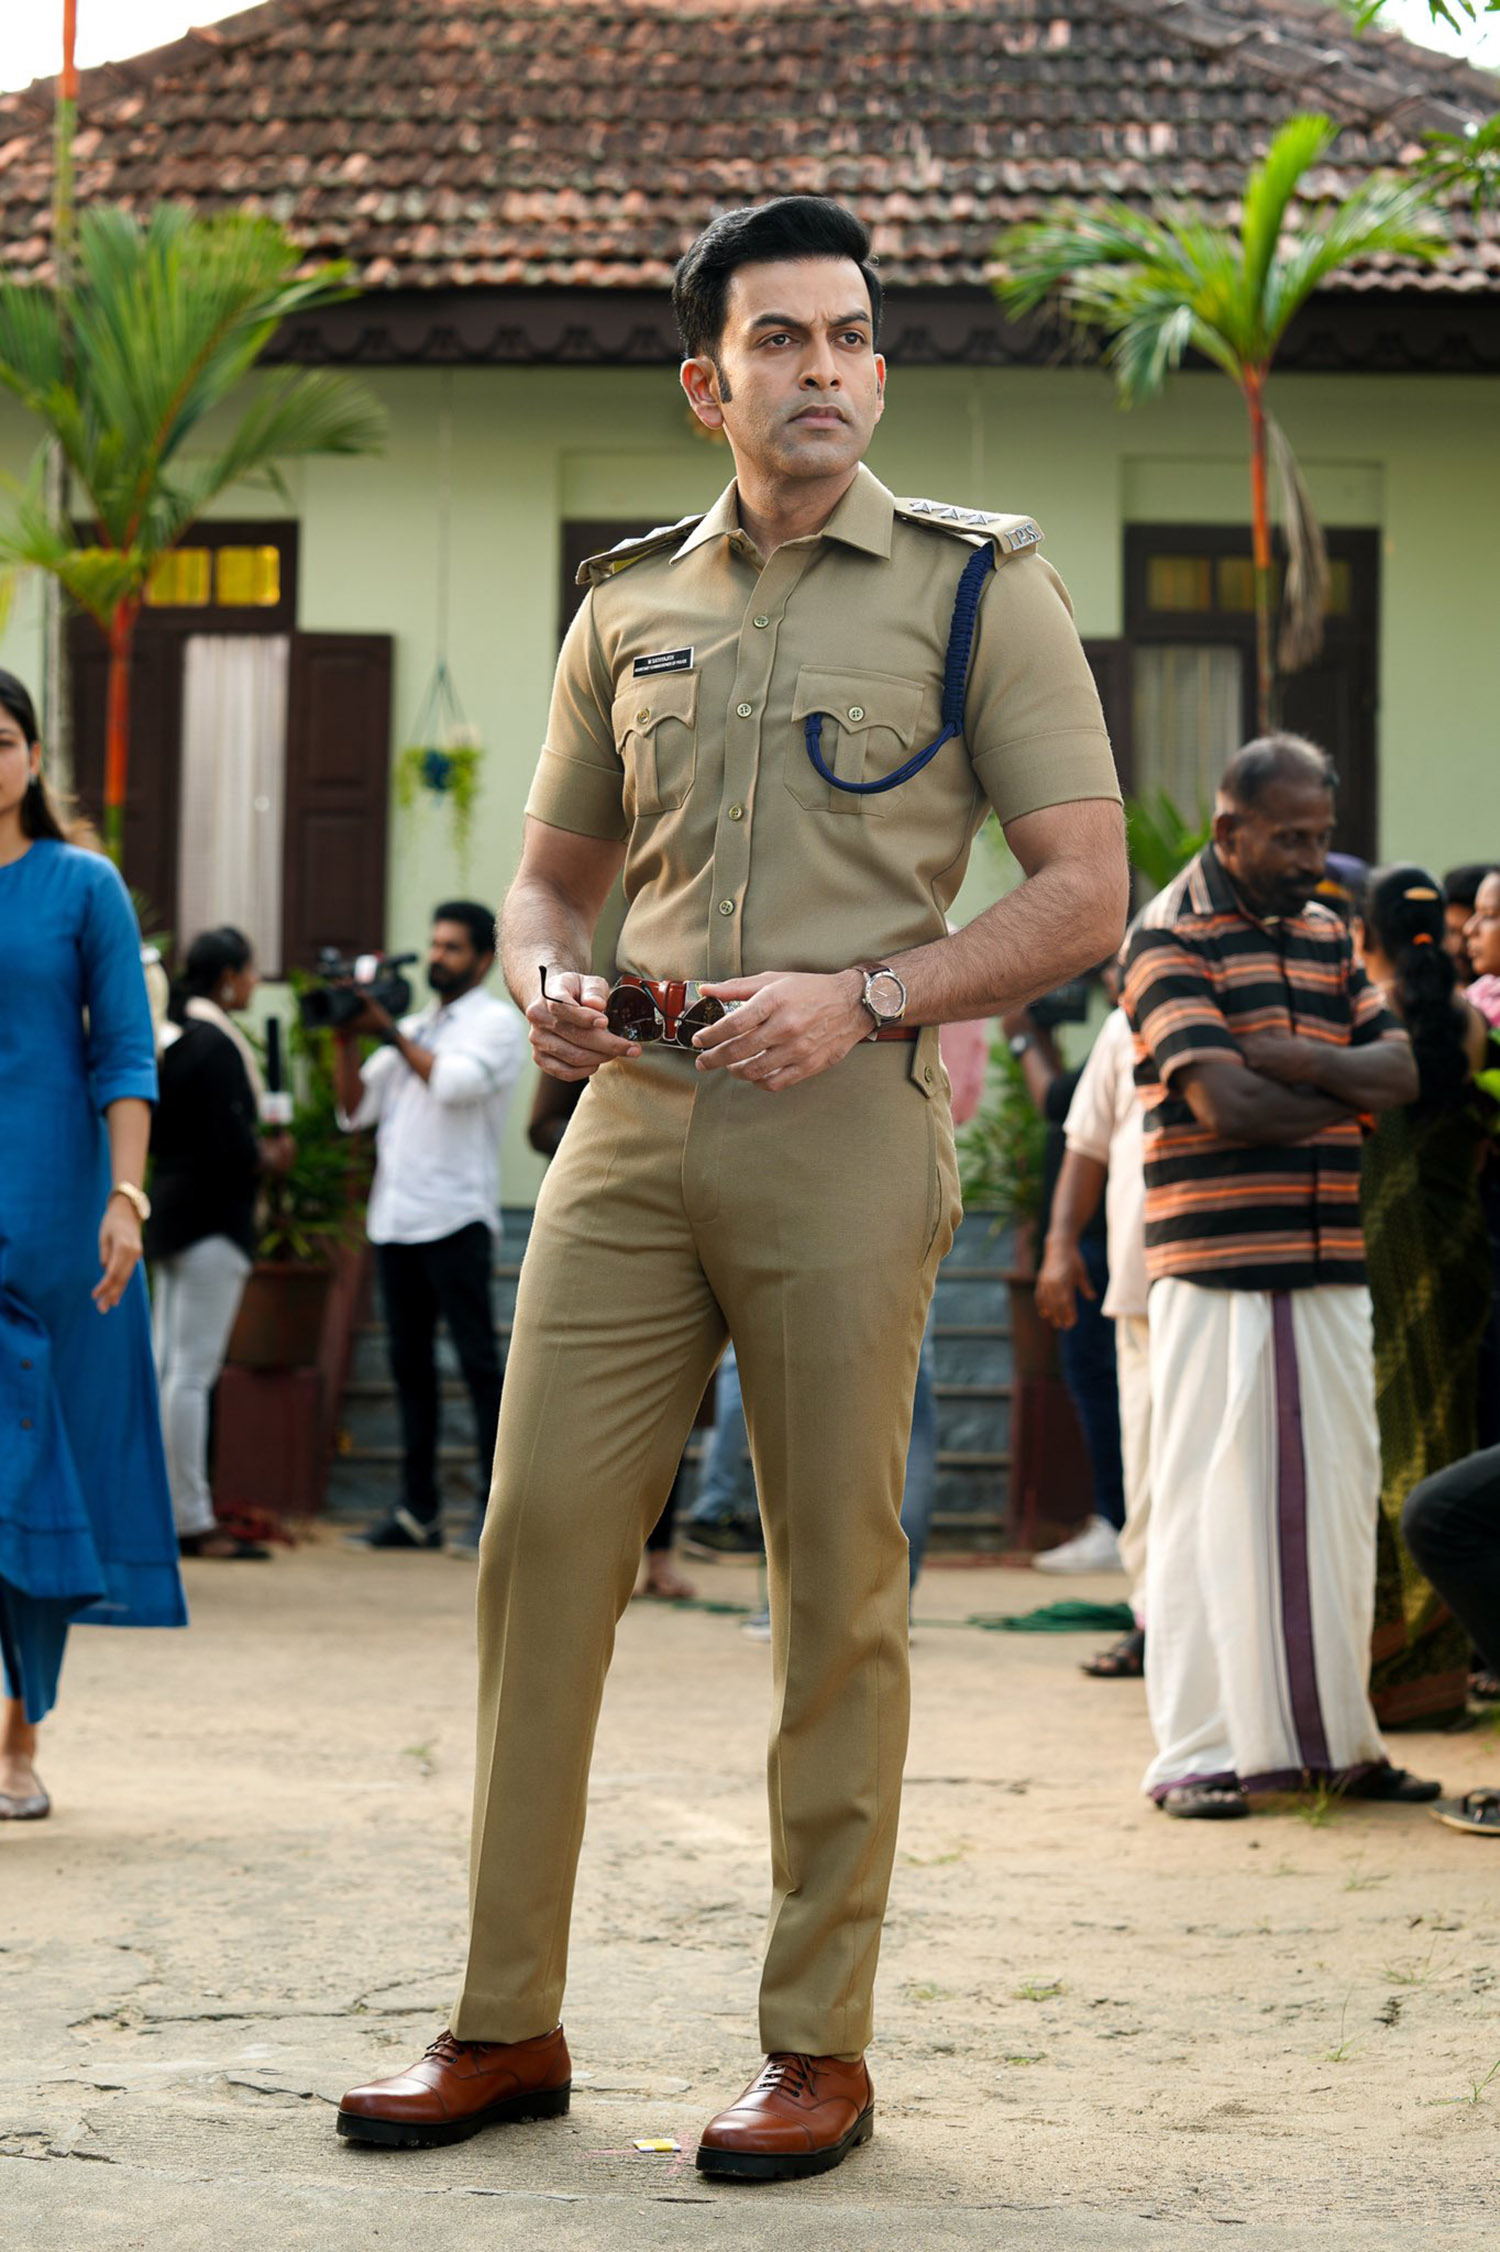 prithviraj sukumaran,prithviraj in cold case,prithviraj new movie stills,prithviraj cold case location stills,prithviraj police character movie,prithviraj latest news,cold case movie images